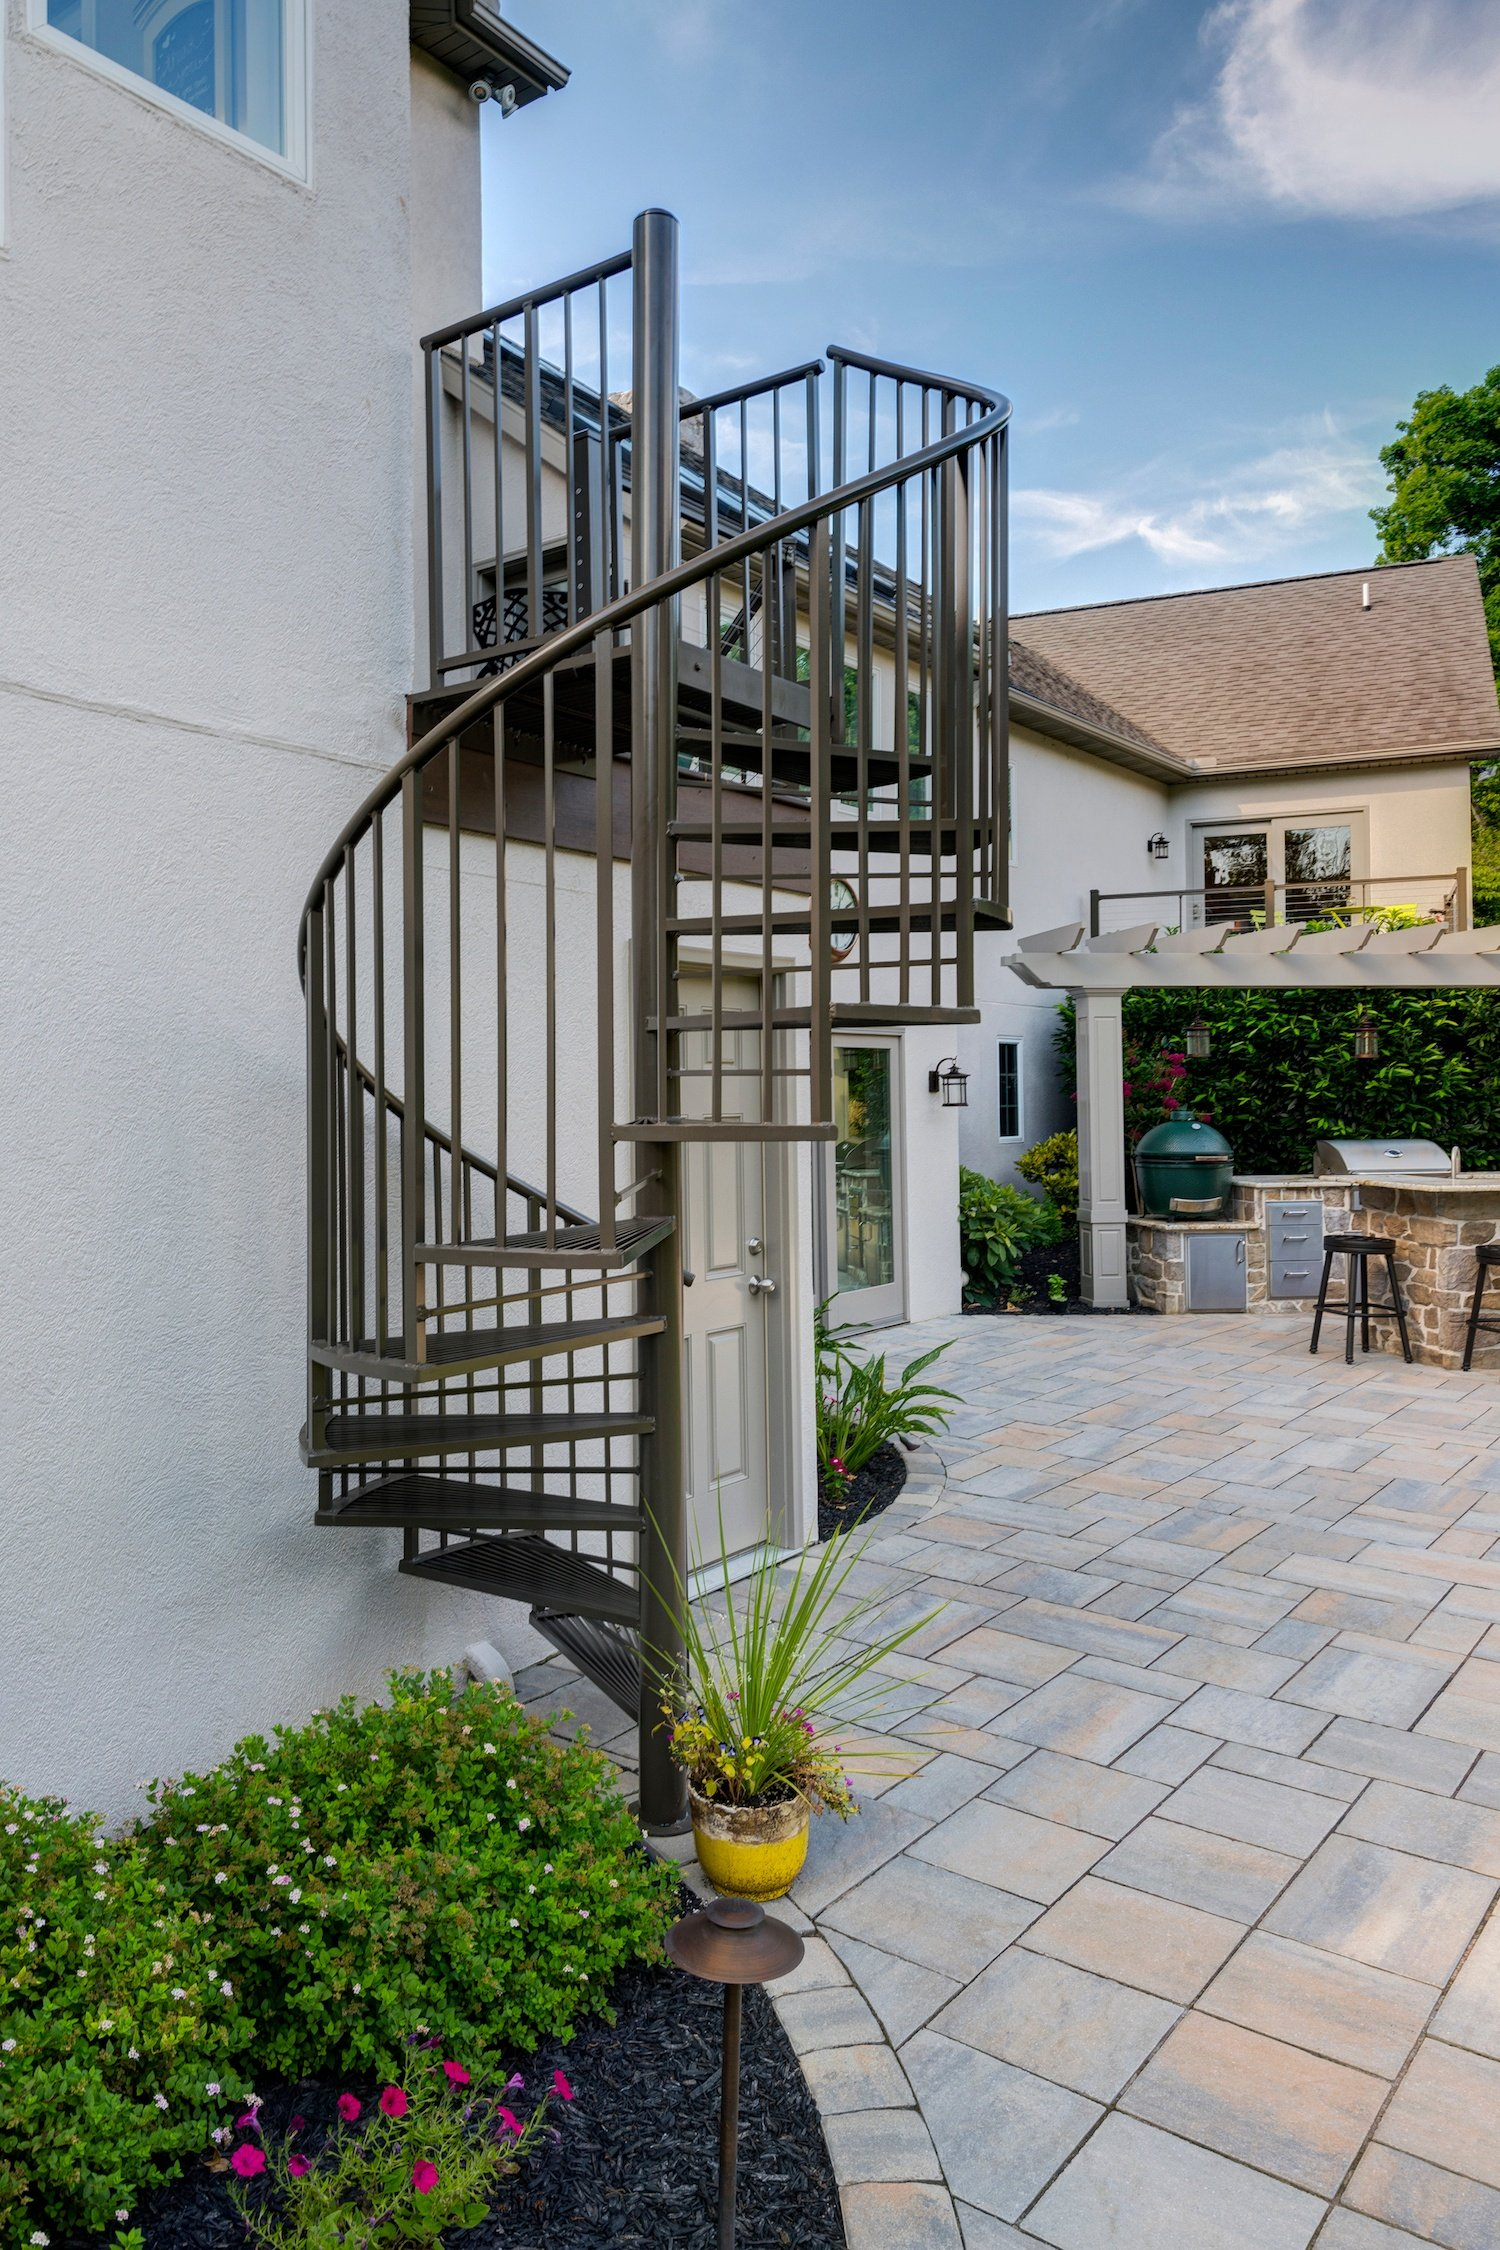 smucker-patio-spiral-staircase-planting-1